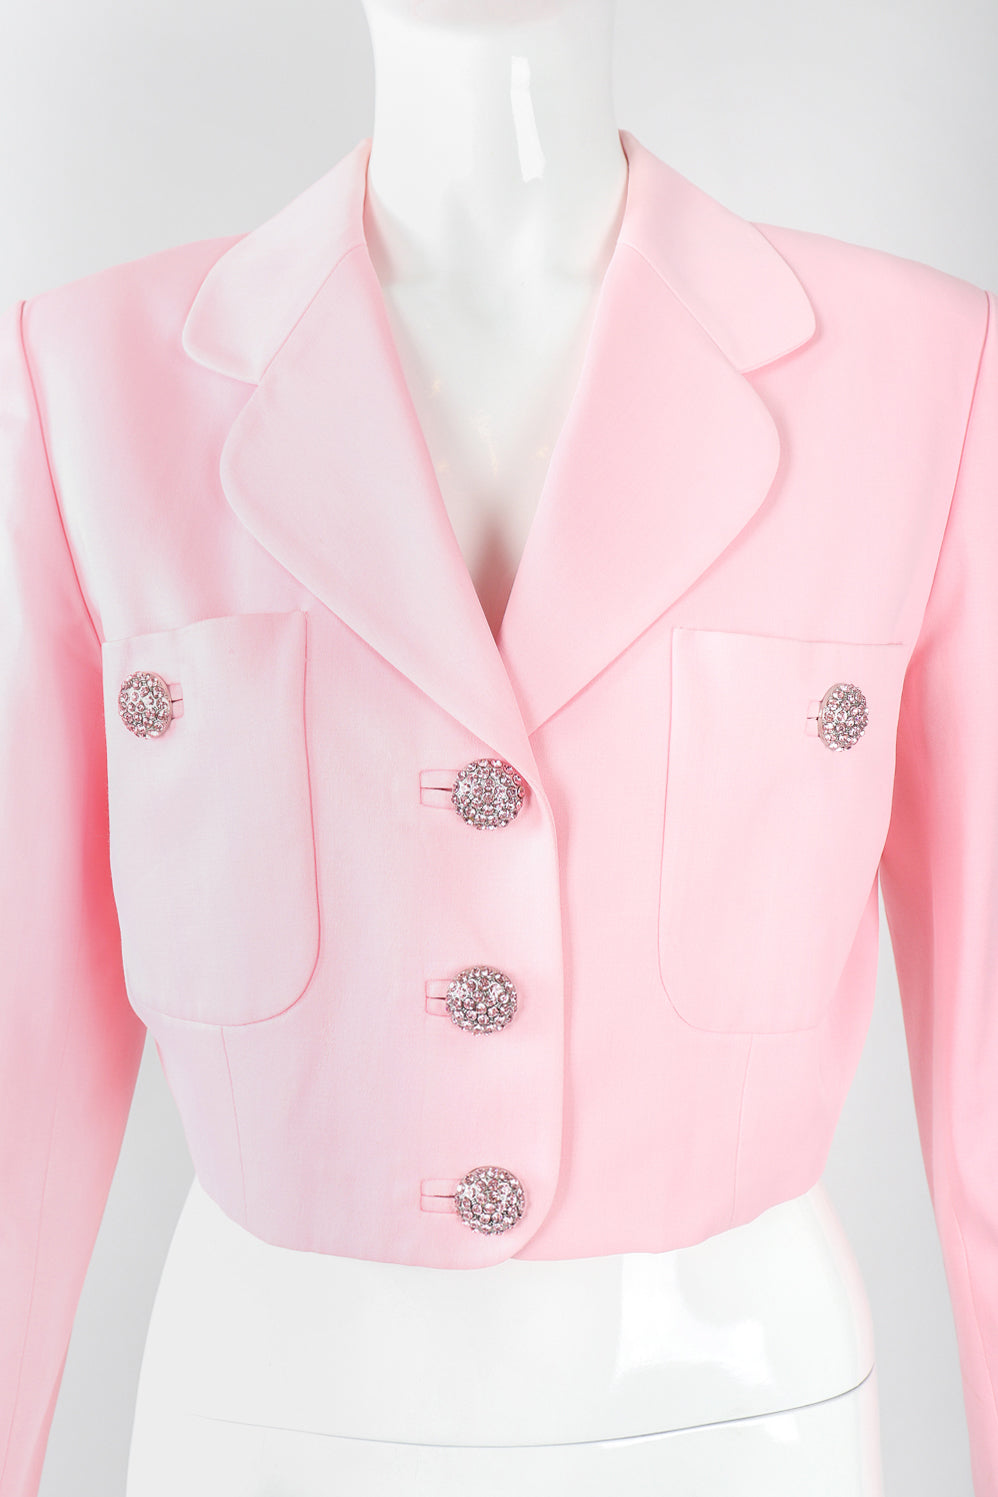 Recess Designer Consignment Vintage Georges Rech Millennial Pink Boxy Cropped Sateen Jacket Los Angeles Resale